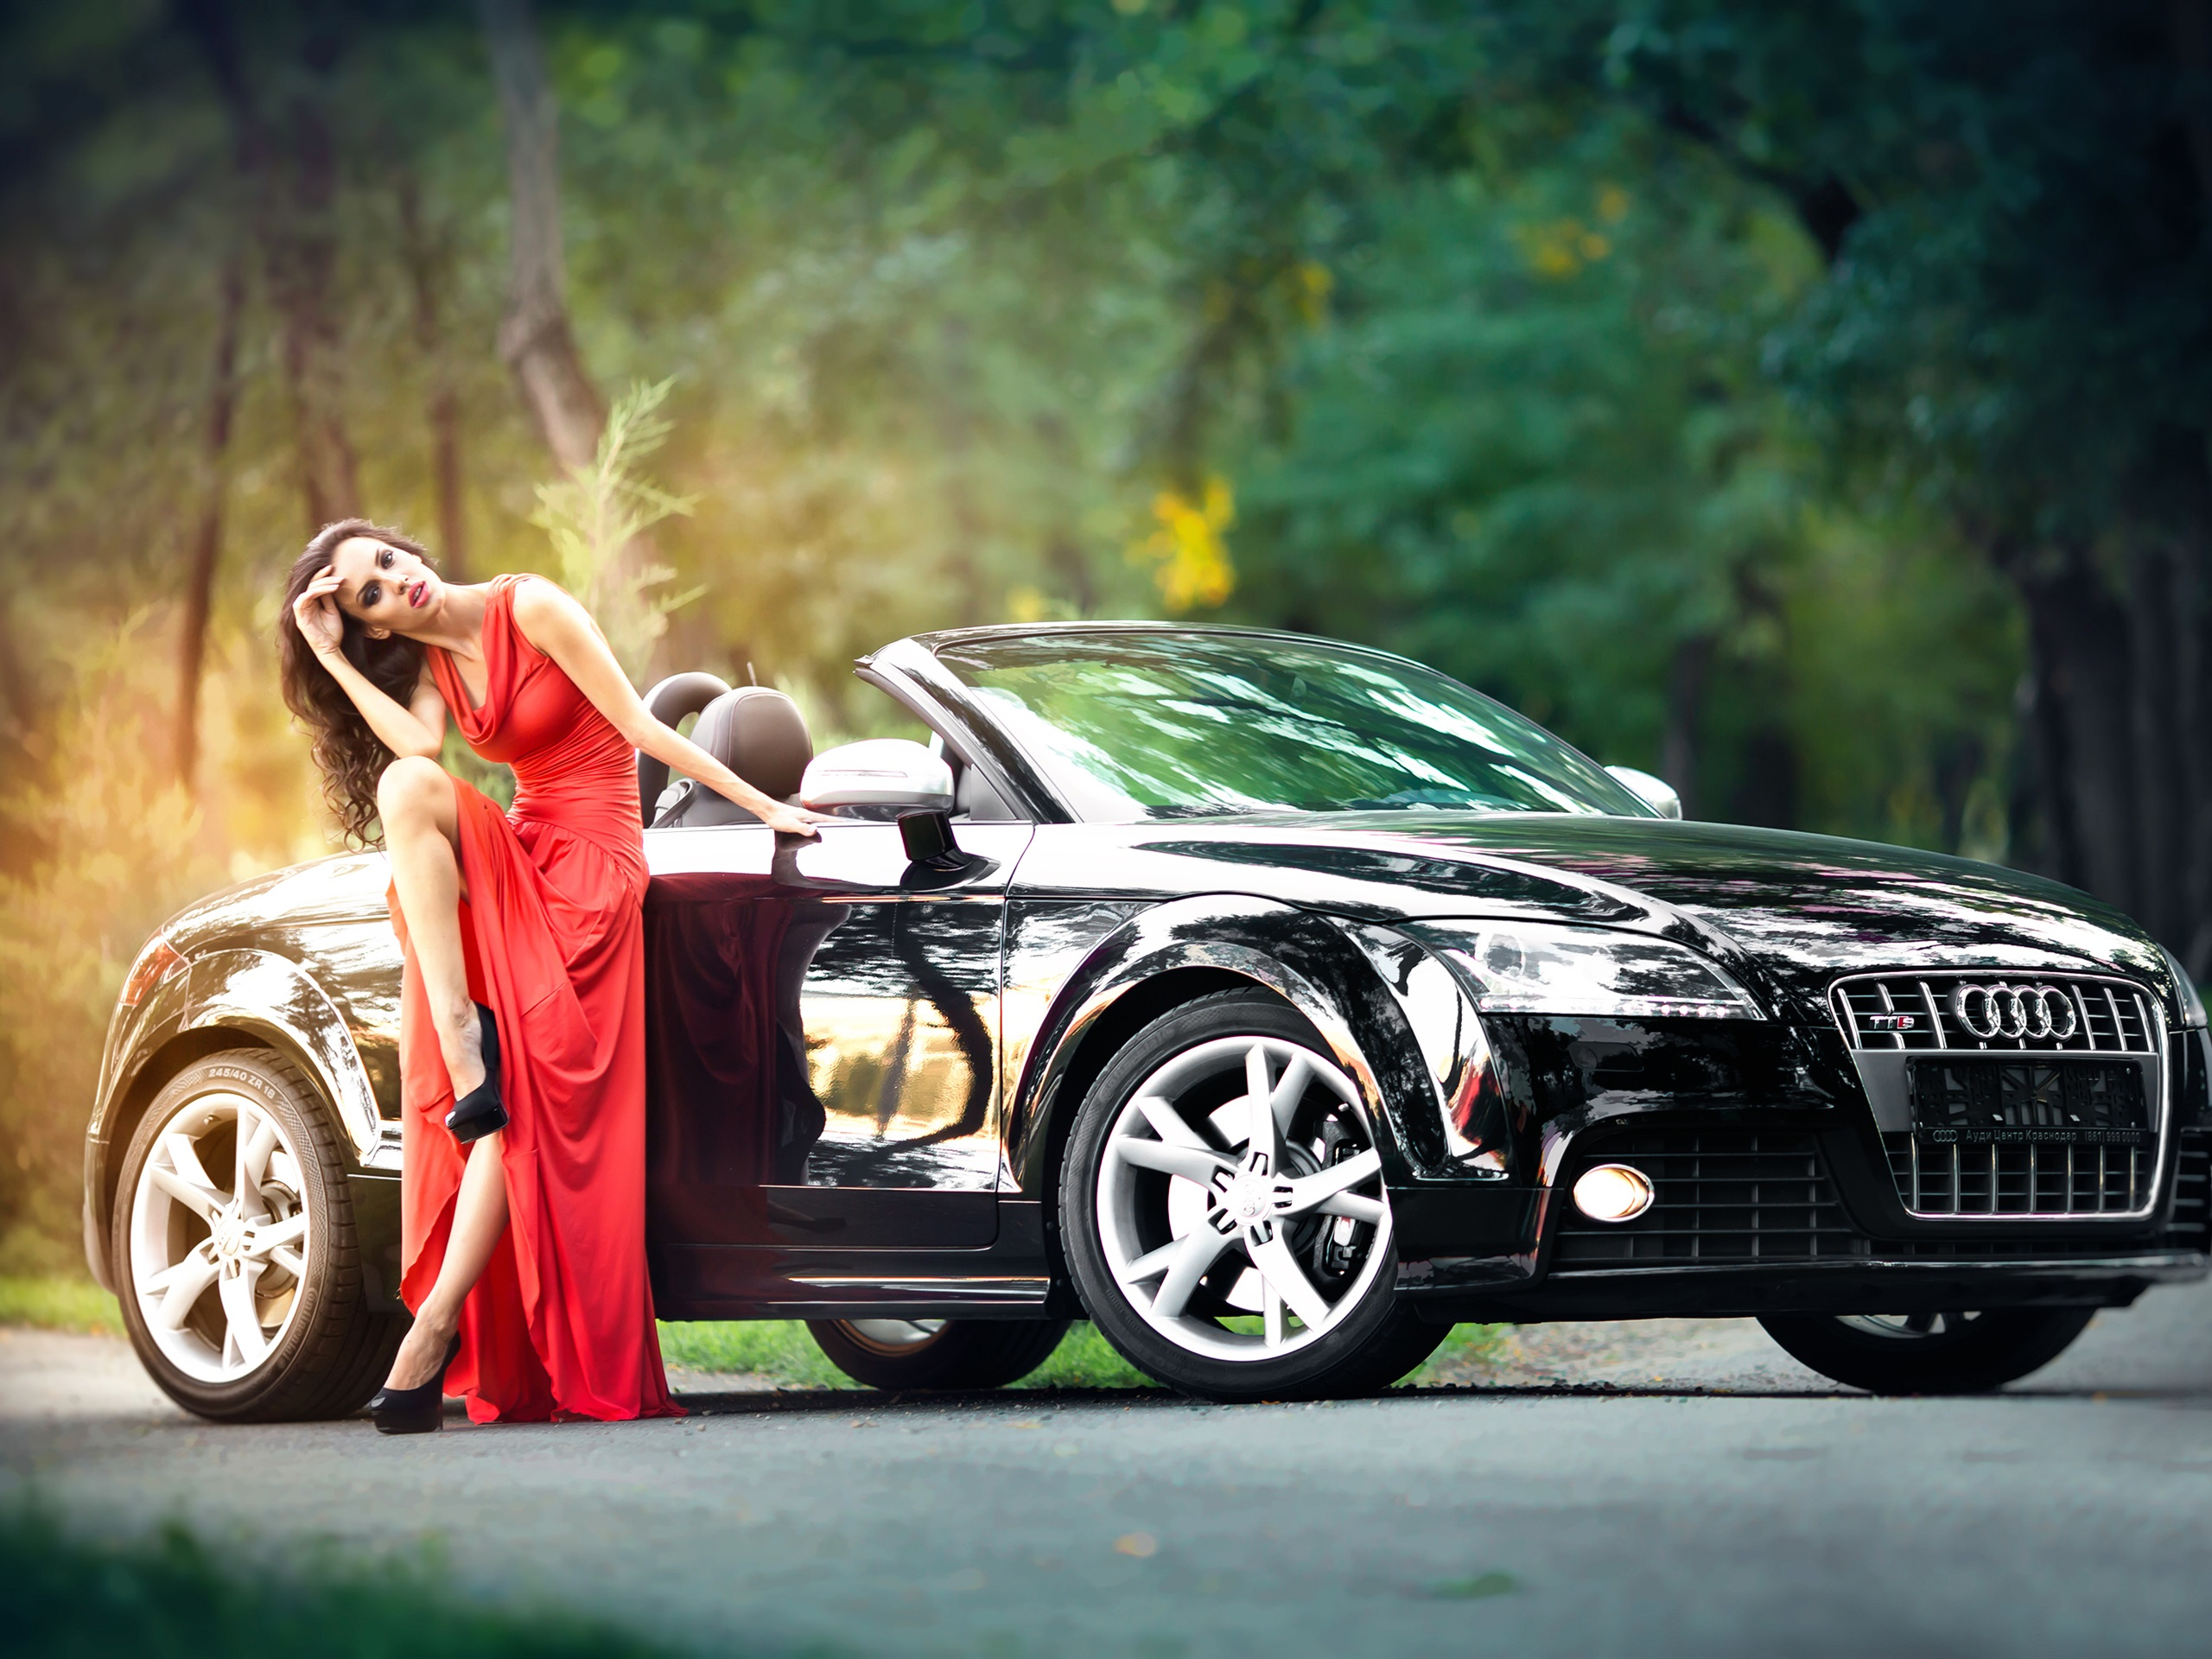 Red Dress Girl And Black Audi Car 750x1334 Iphone 8766s